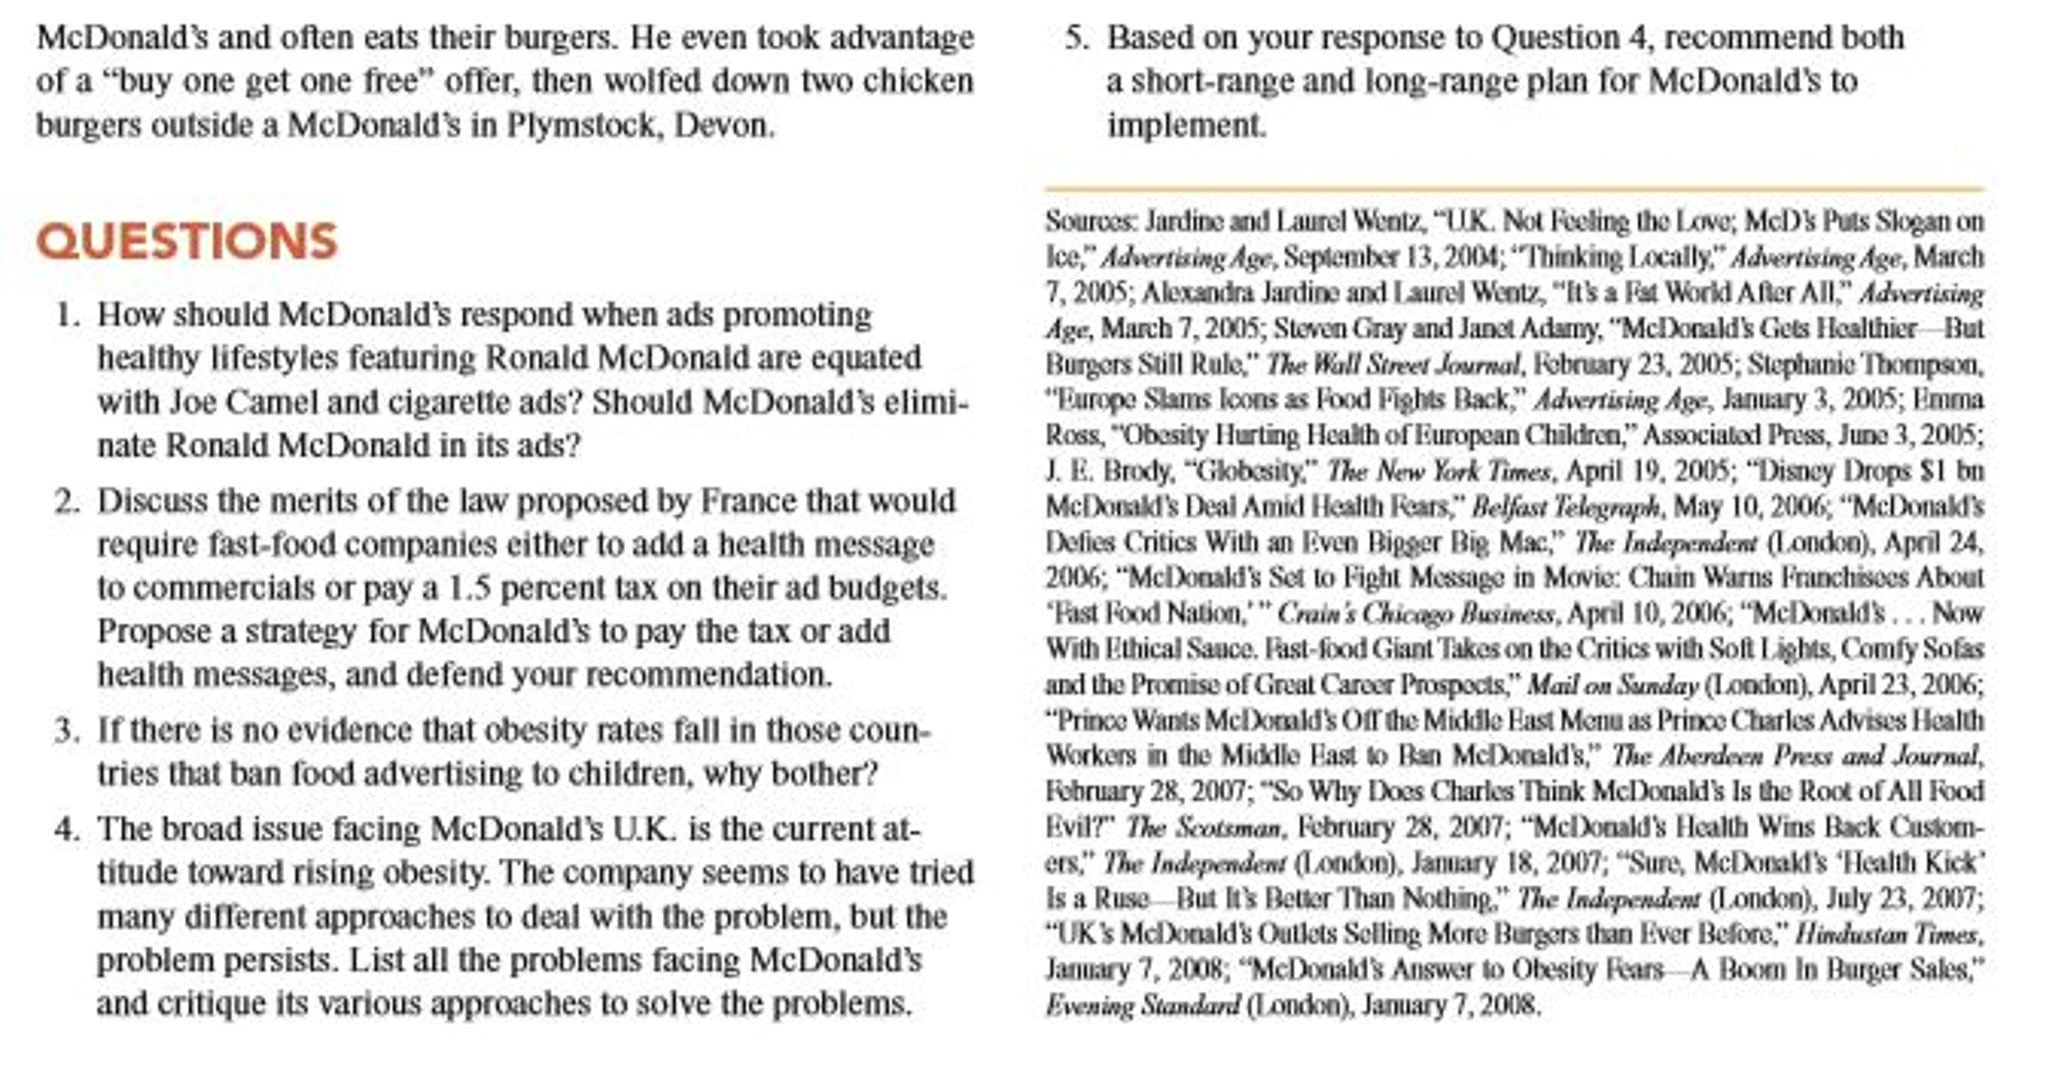 mc donald case analysis essay This case study illustrates how mcdonald's marketing process works and how they overcome problems in the process this case analysis will include a swot analysis of mcdonald's, which looks at the internal environment of strengths and weaknesses and the external environment of opportunities and threats.